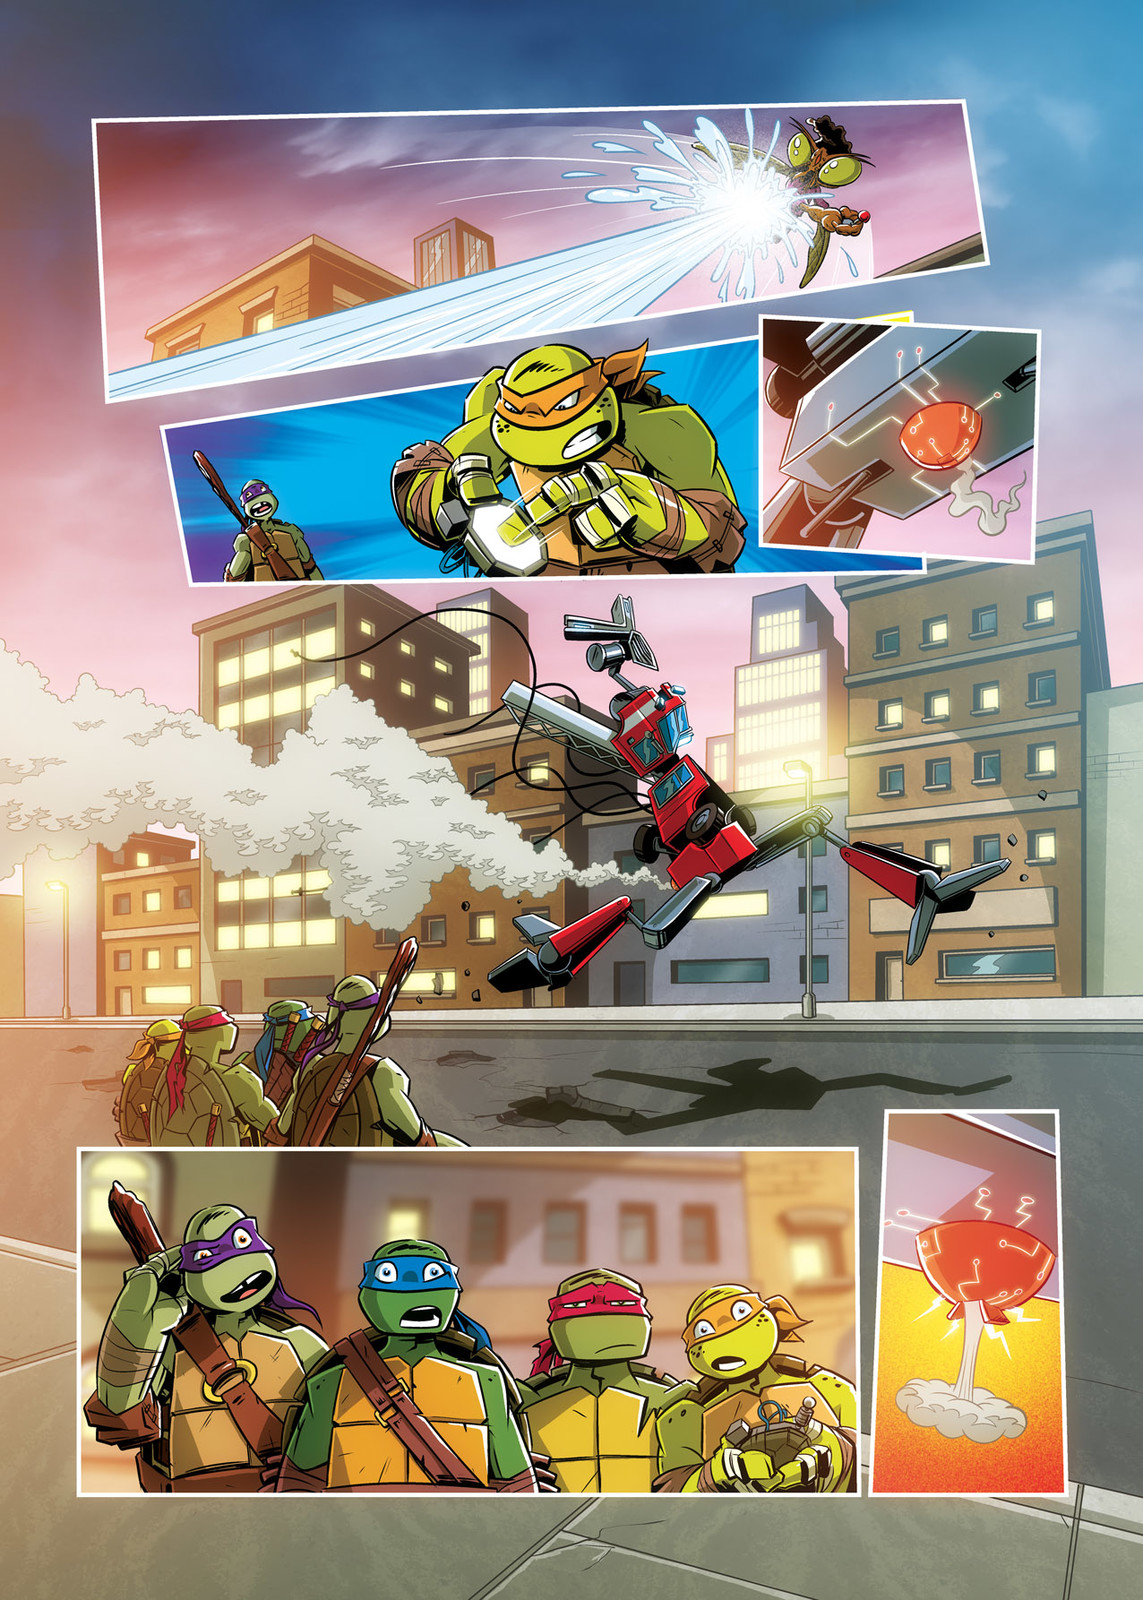 Page excerpt from Nickelodeon/Panini's Teenage Mutant Ninja Turtles comic 'Robo Rumble'